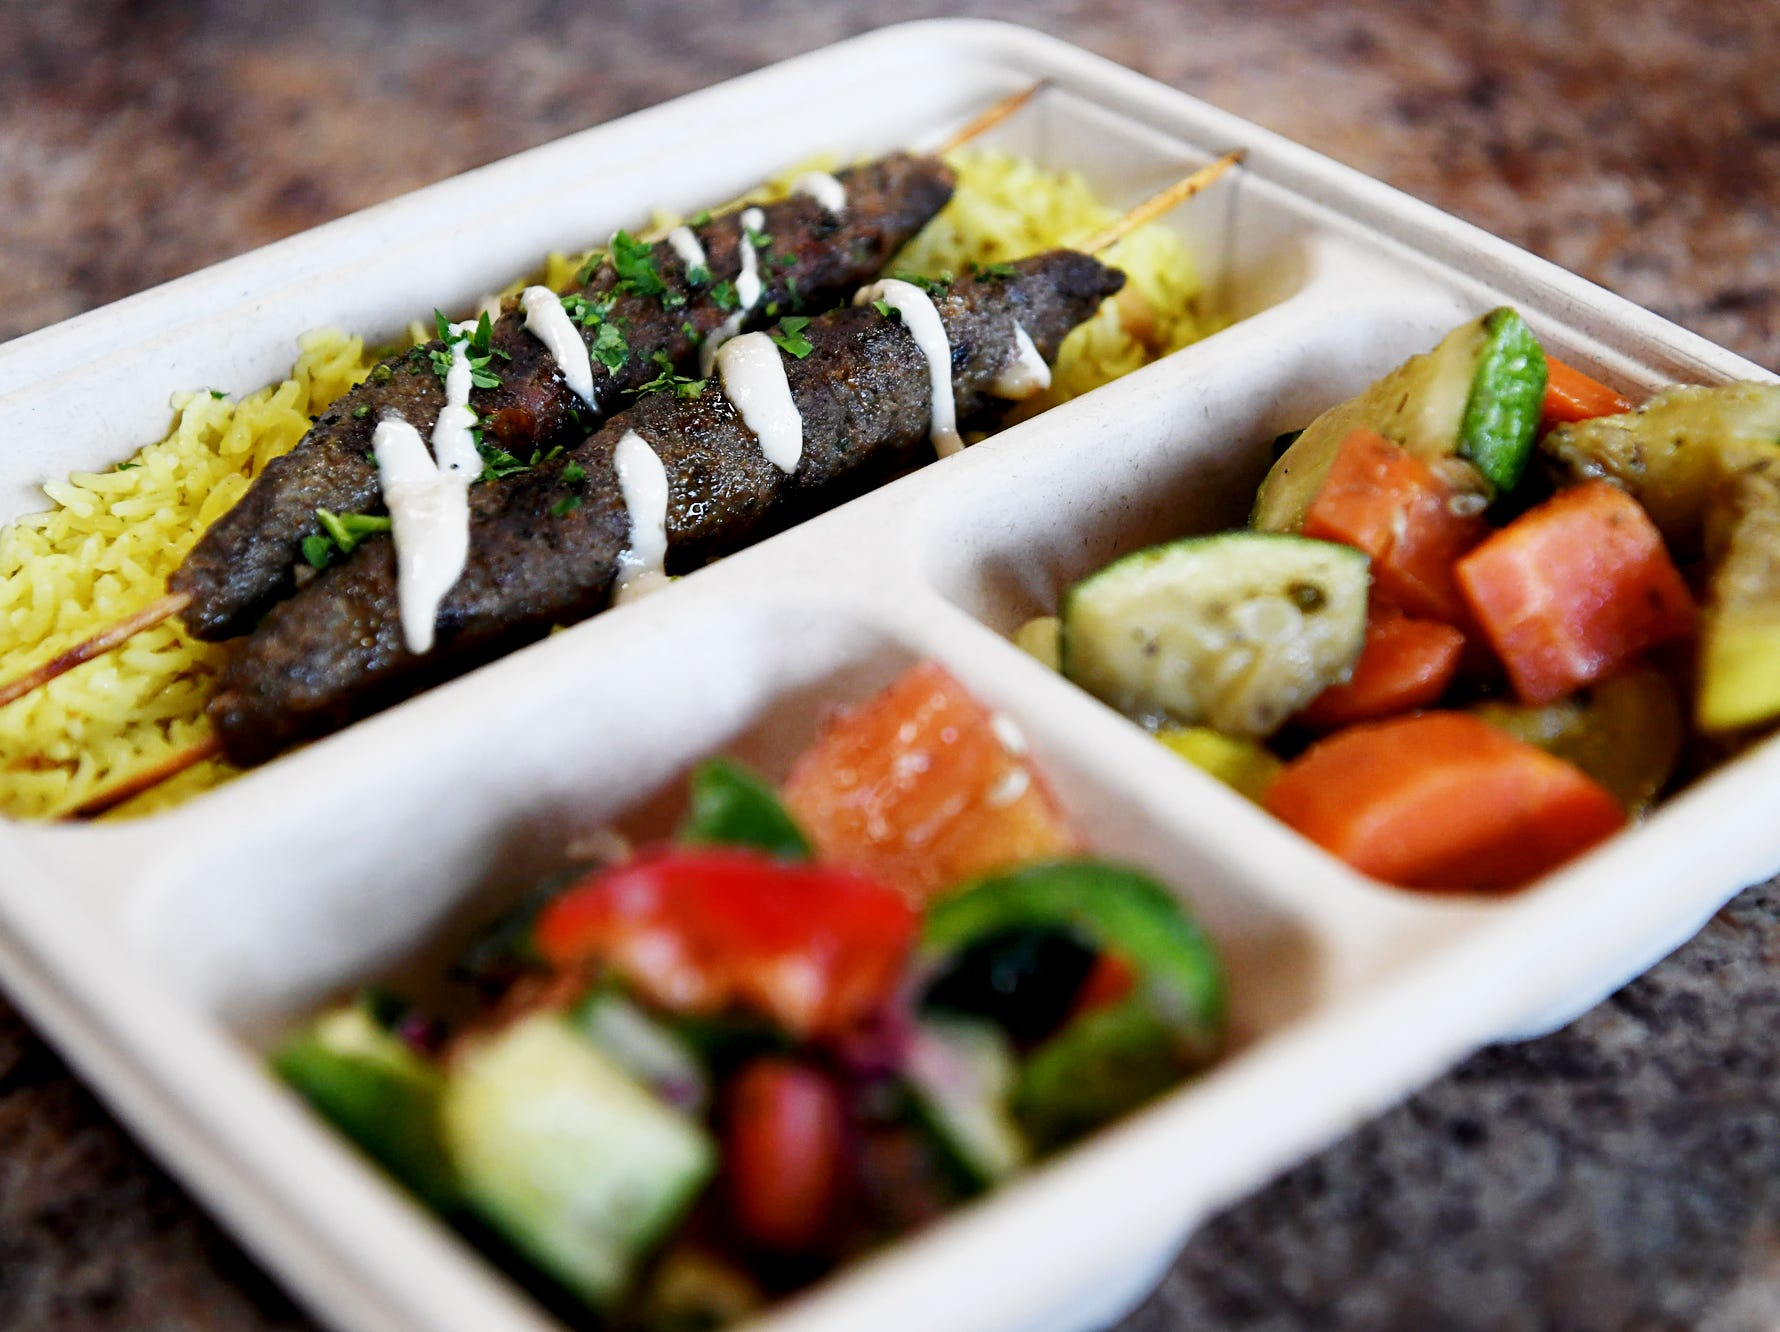 Mr. Kabab's kofta kabab comes with rice, vegetables and salad.